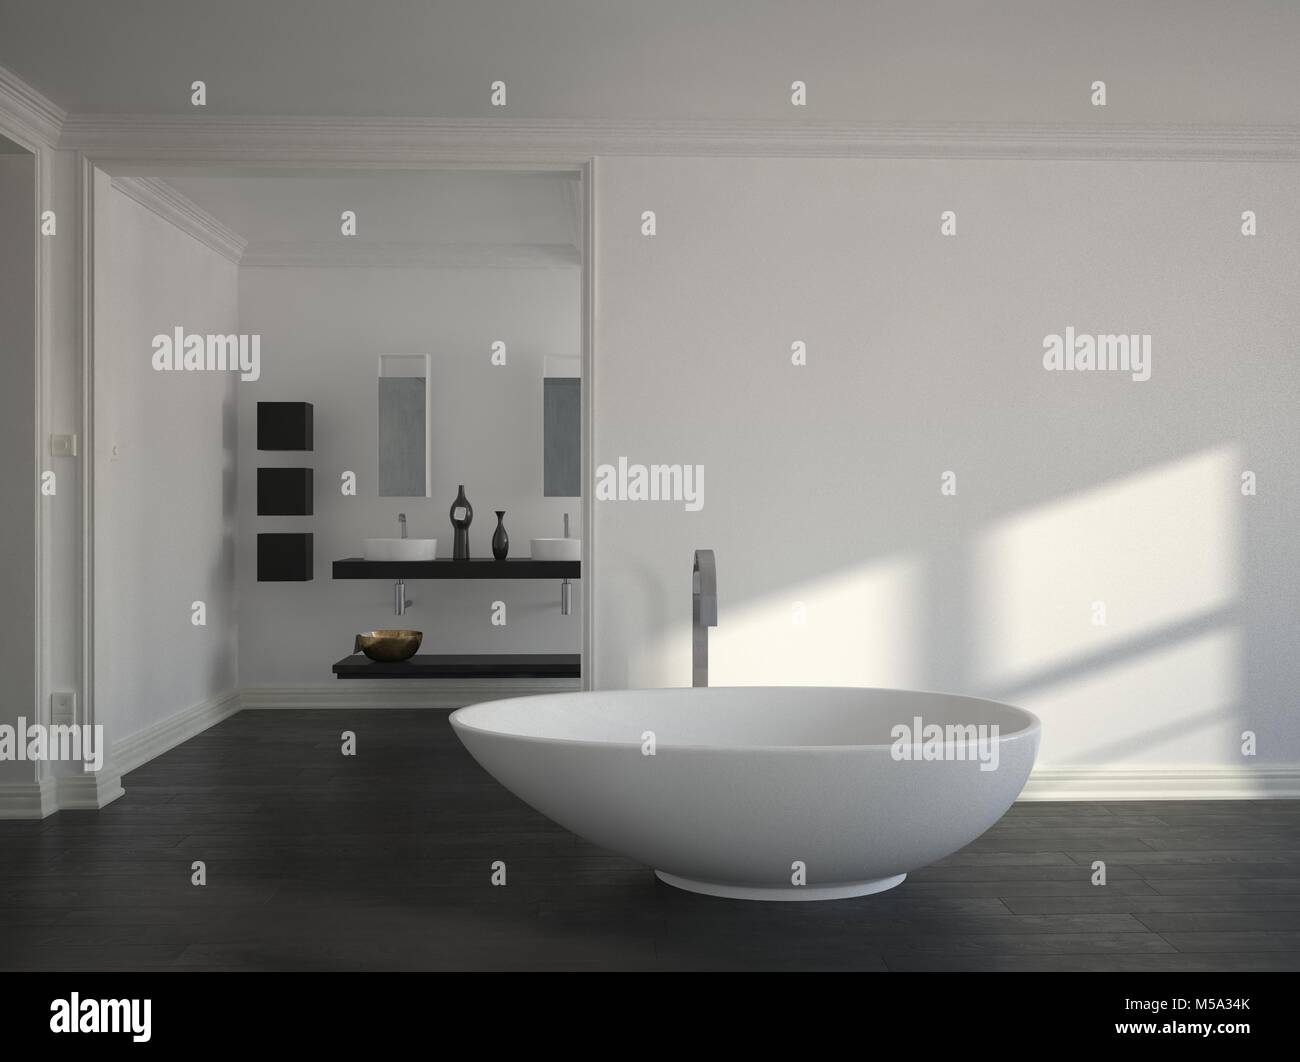 lighting freestanding stockfotos lighting freestanding bilder alamy. Black Bedroom Furniture Sets. Home Design Ideas